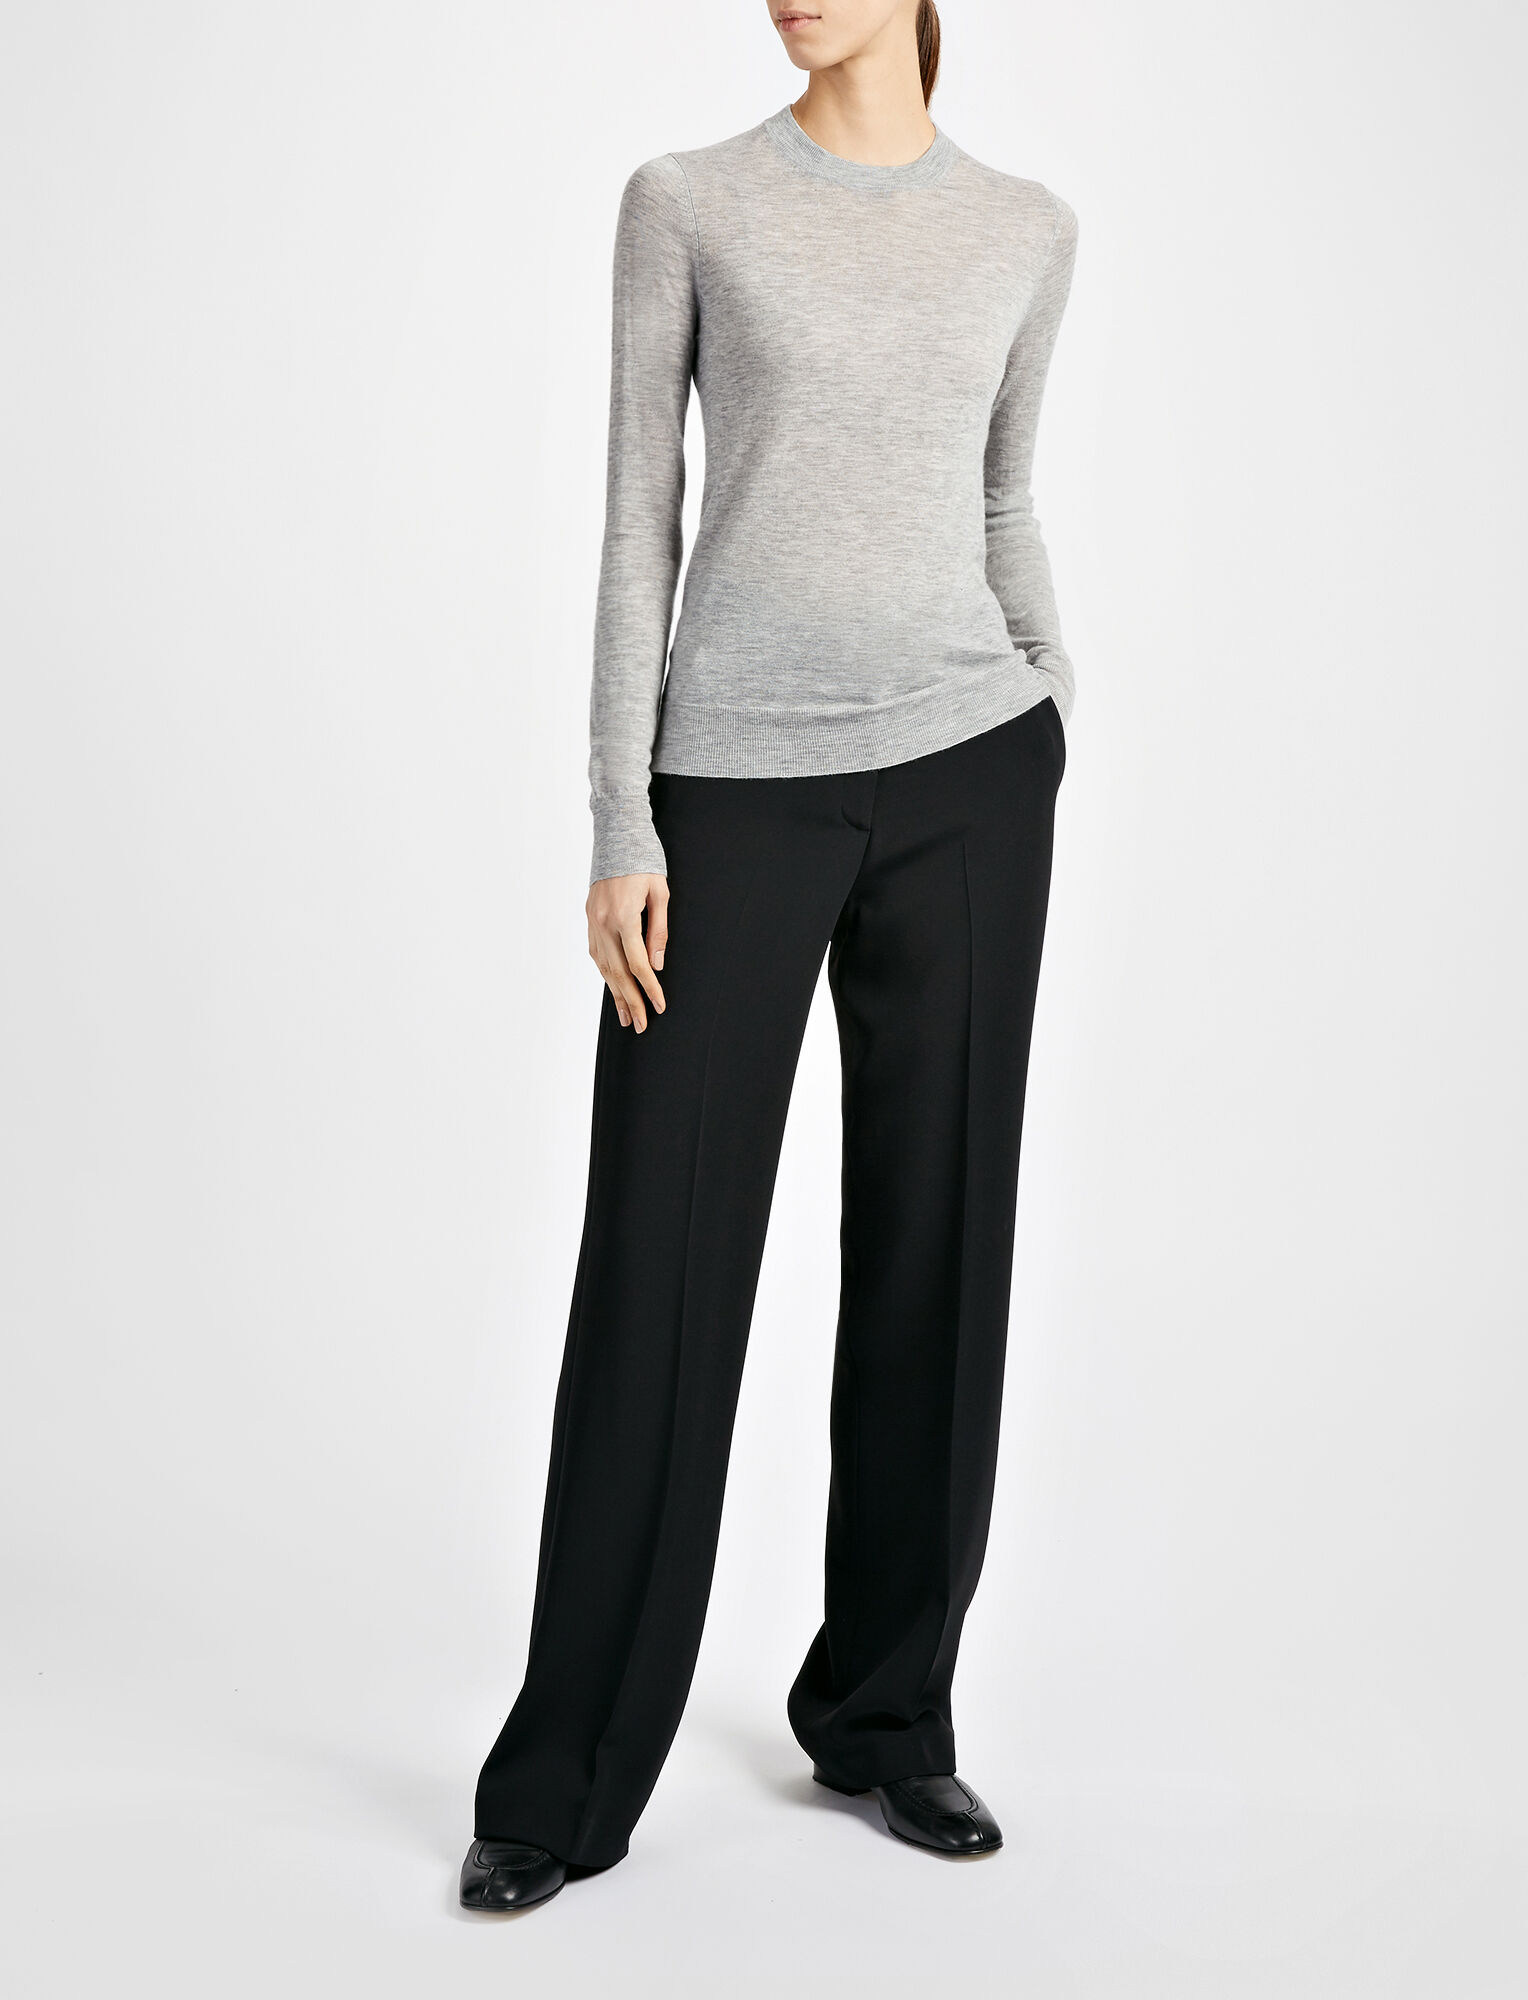 Joseph, Fitted Cashair Sweater, in GREY CHINE